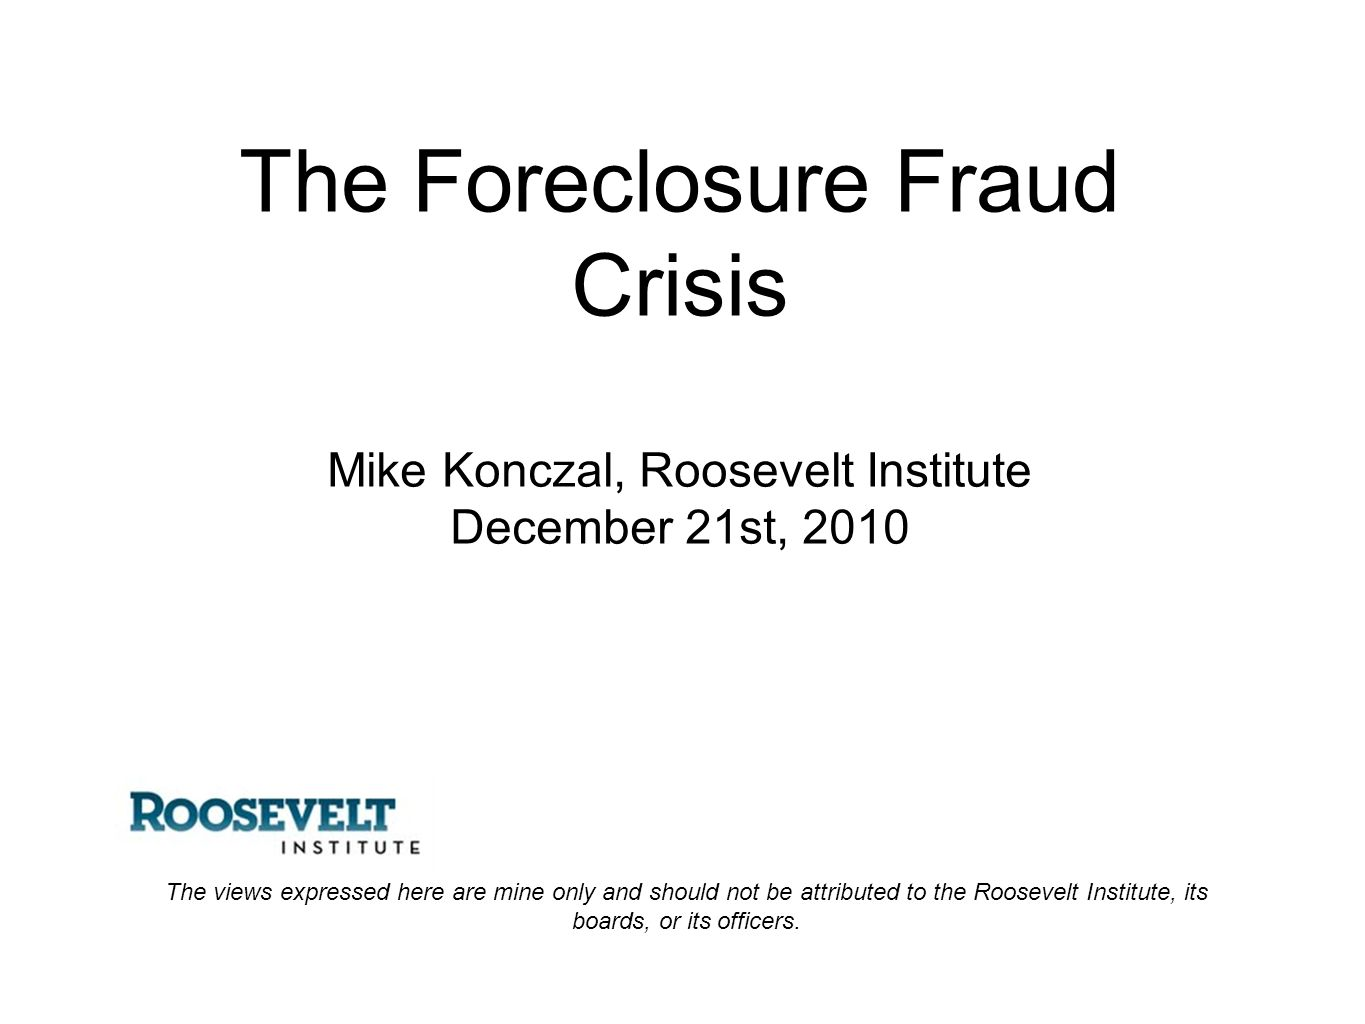 The Foreclosure Fraud Crisis Mike Konczal, Roosevelt Institute December 21st, 2010 The views expressed here are mine only and should not be attributed